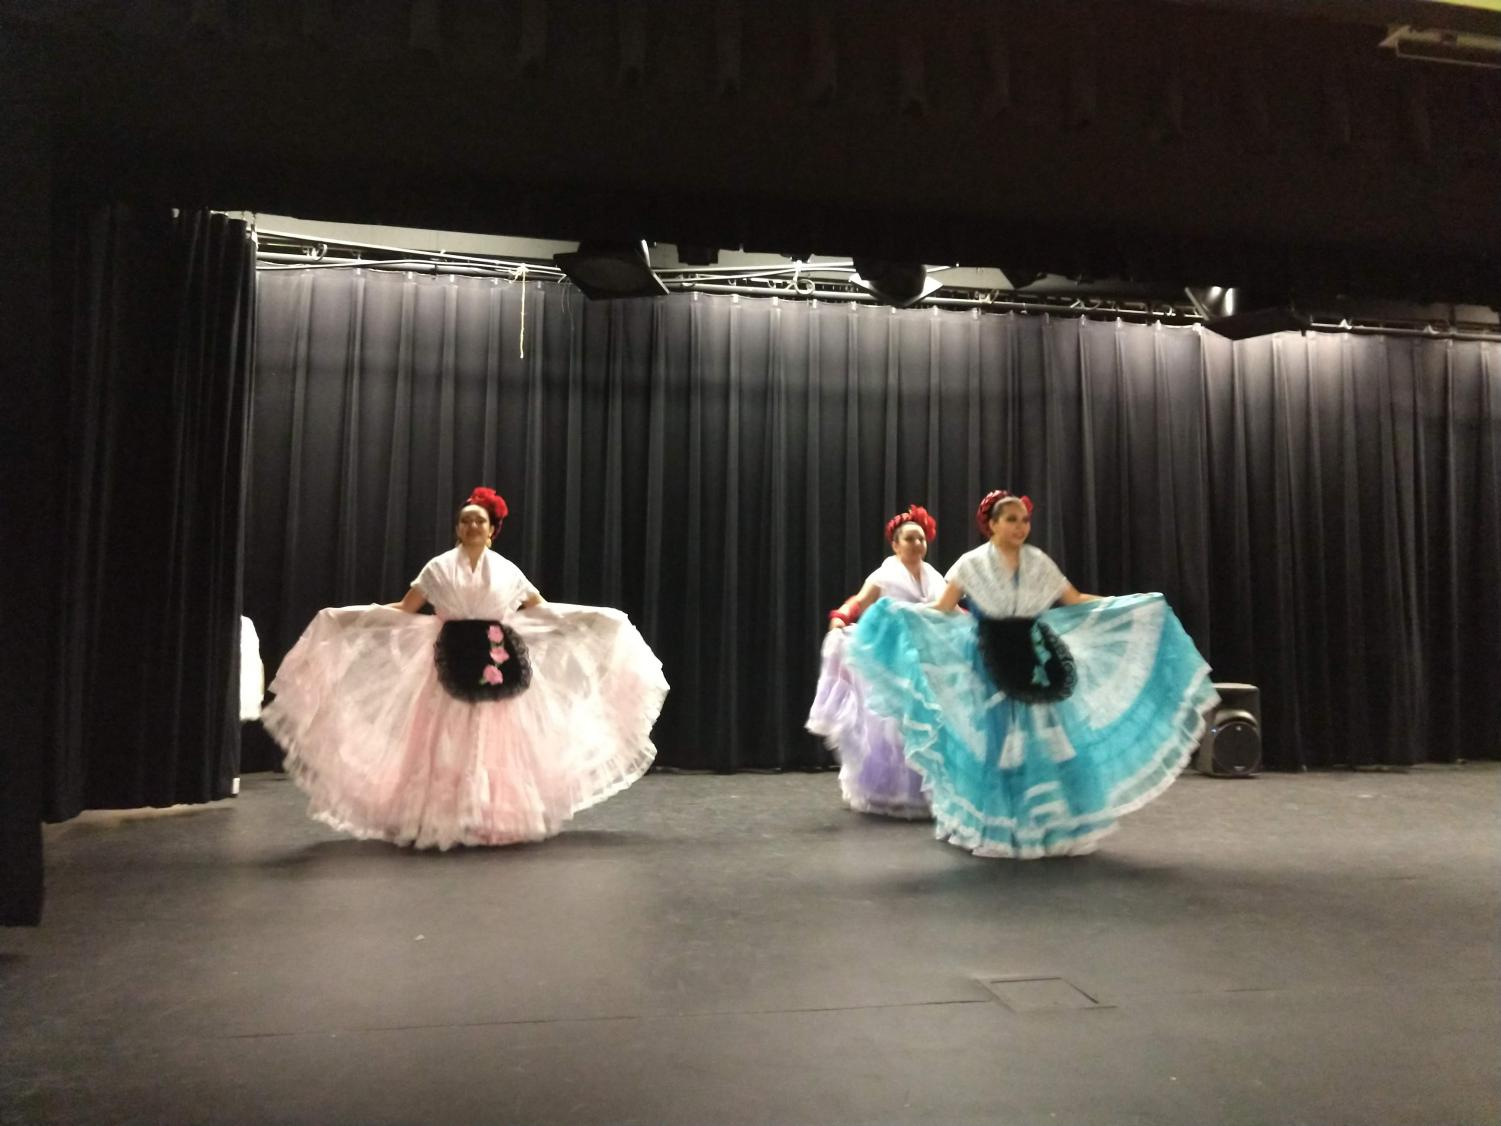 Alma+Mexicana+Ballet+Folklorico+Performs+During+Lunch